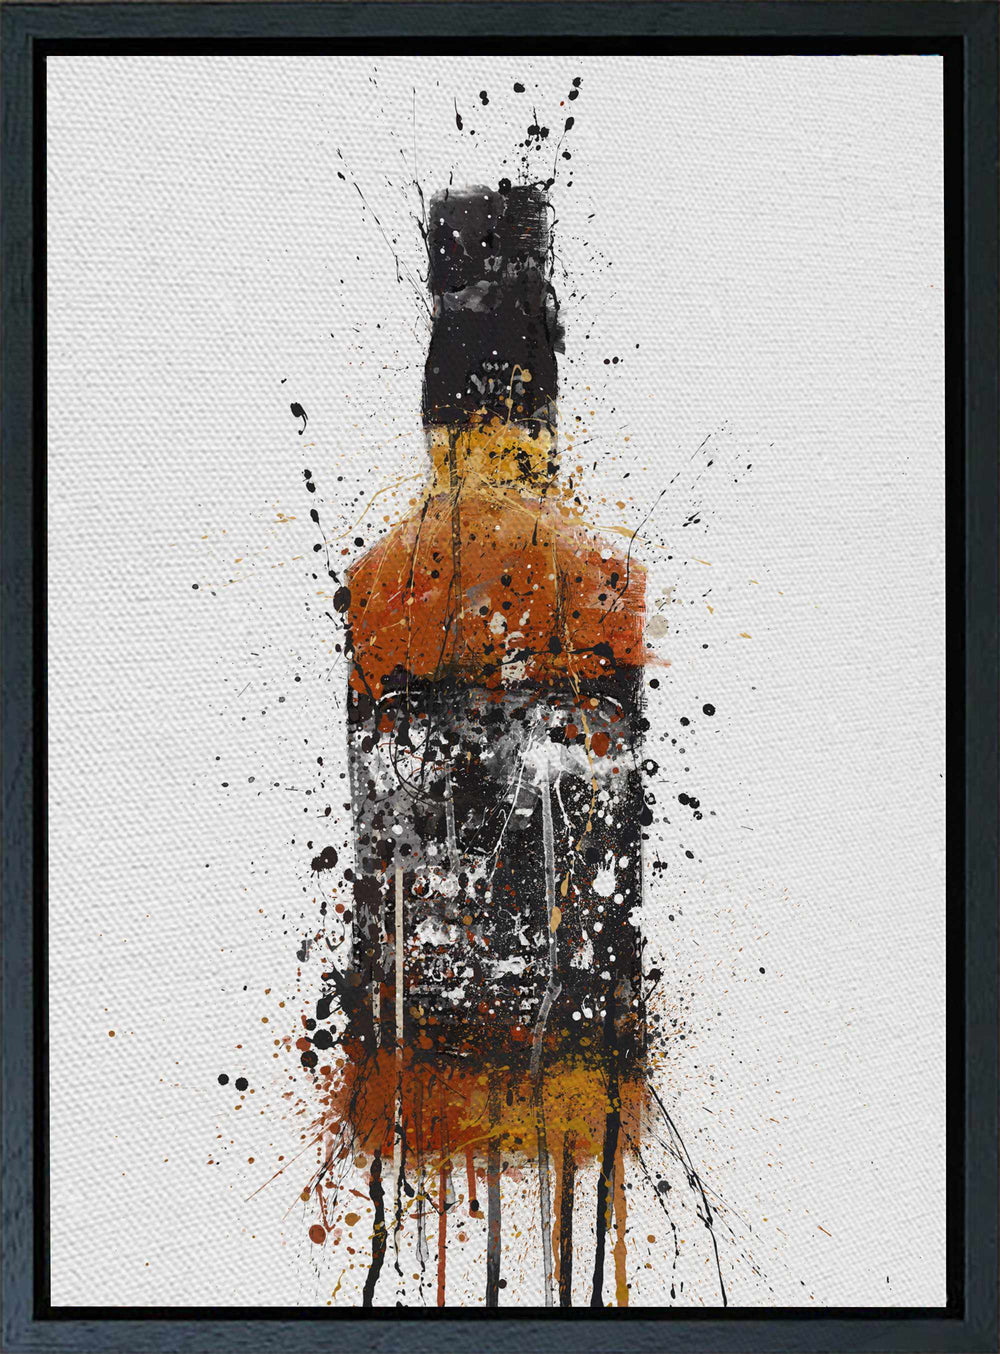 Premium Canvas Wall Art Print Whiskey Bottle 'Umber'-We Love Prints